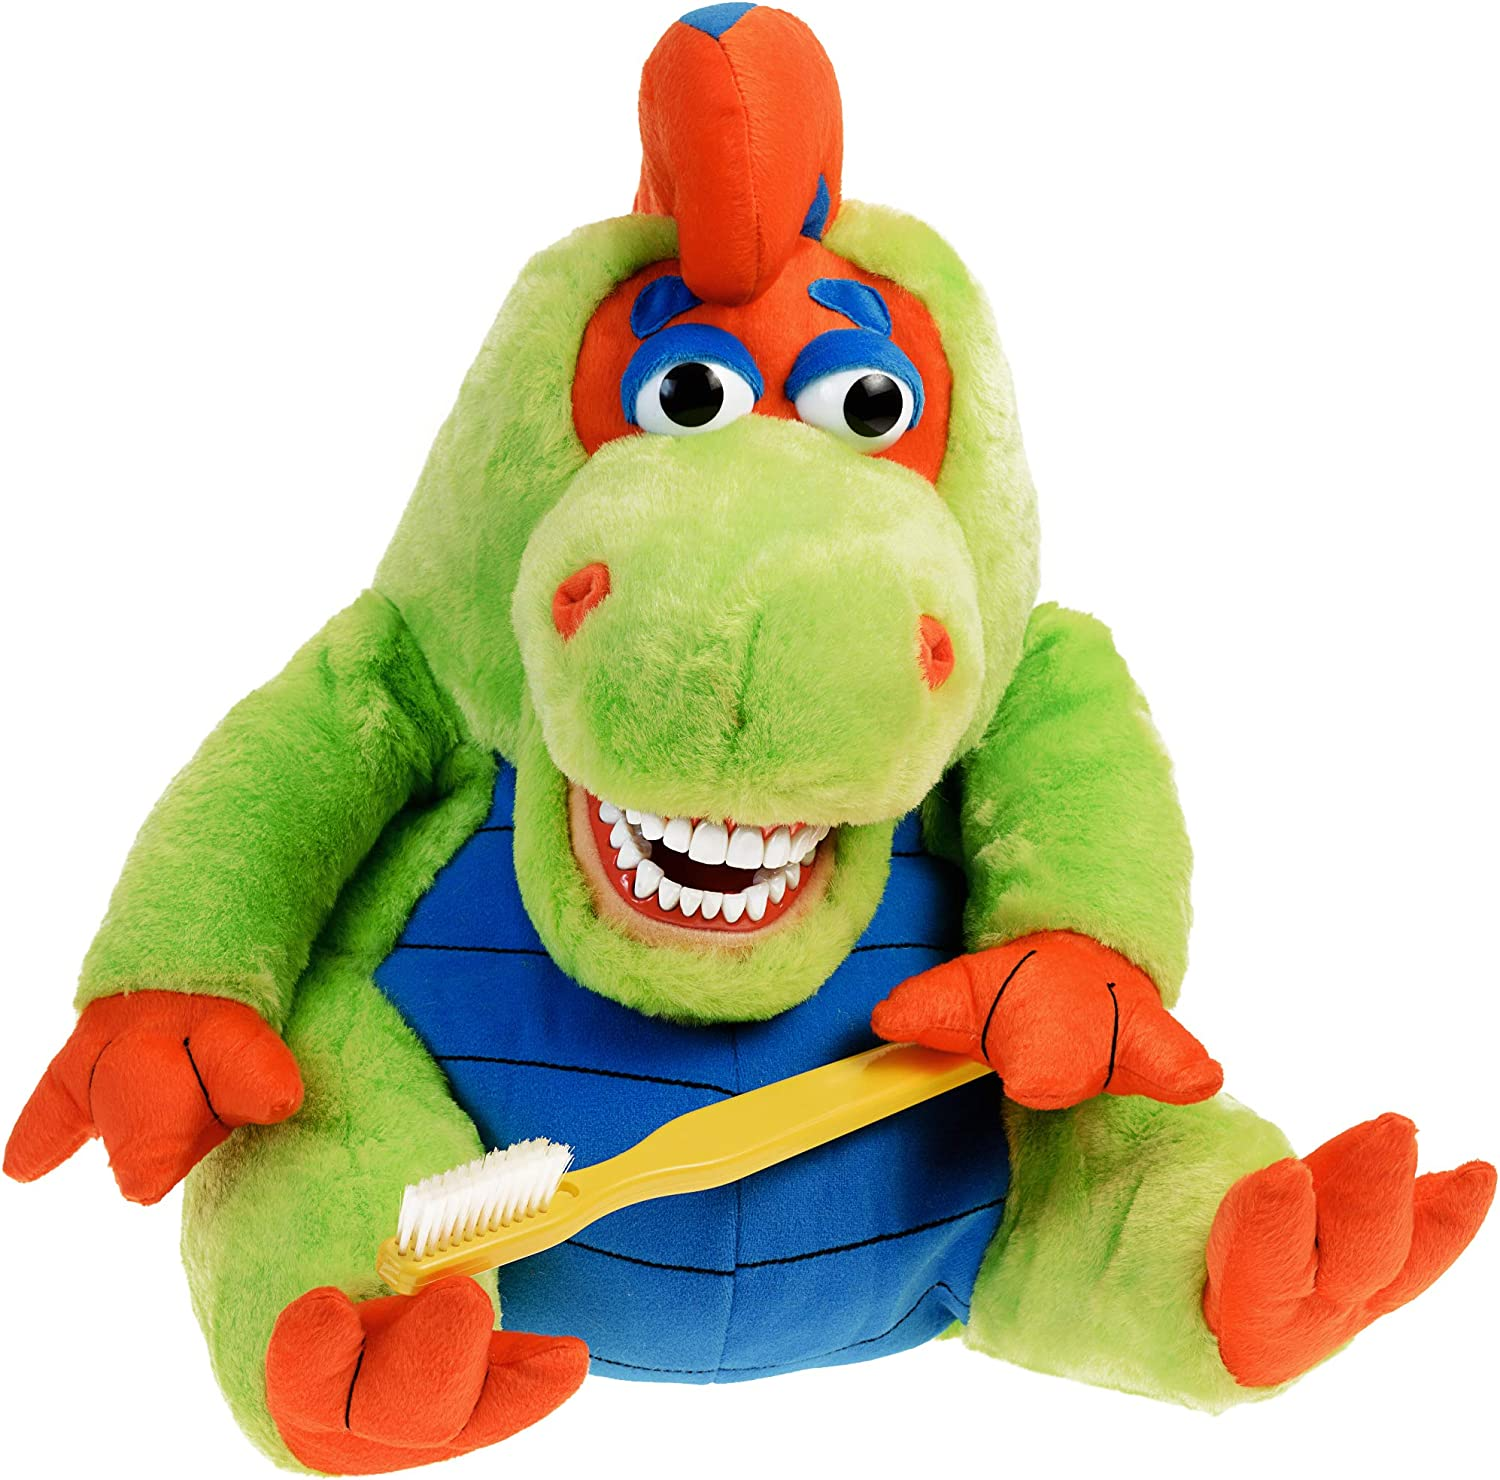 StarSmilez Kids Tooth Brushing Buddy Farley Flossisauras - Plush Dental Education Helper Fully flossible - Teach Children to Care for Mouth and Teeth